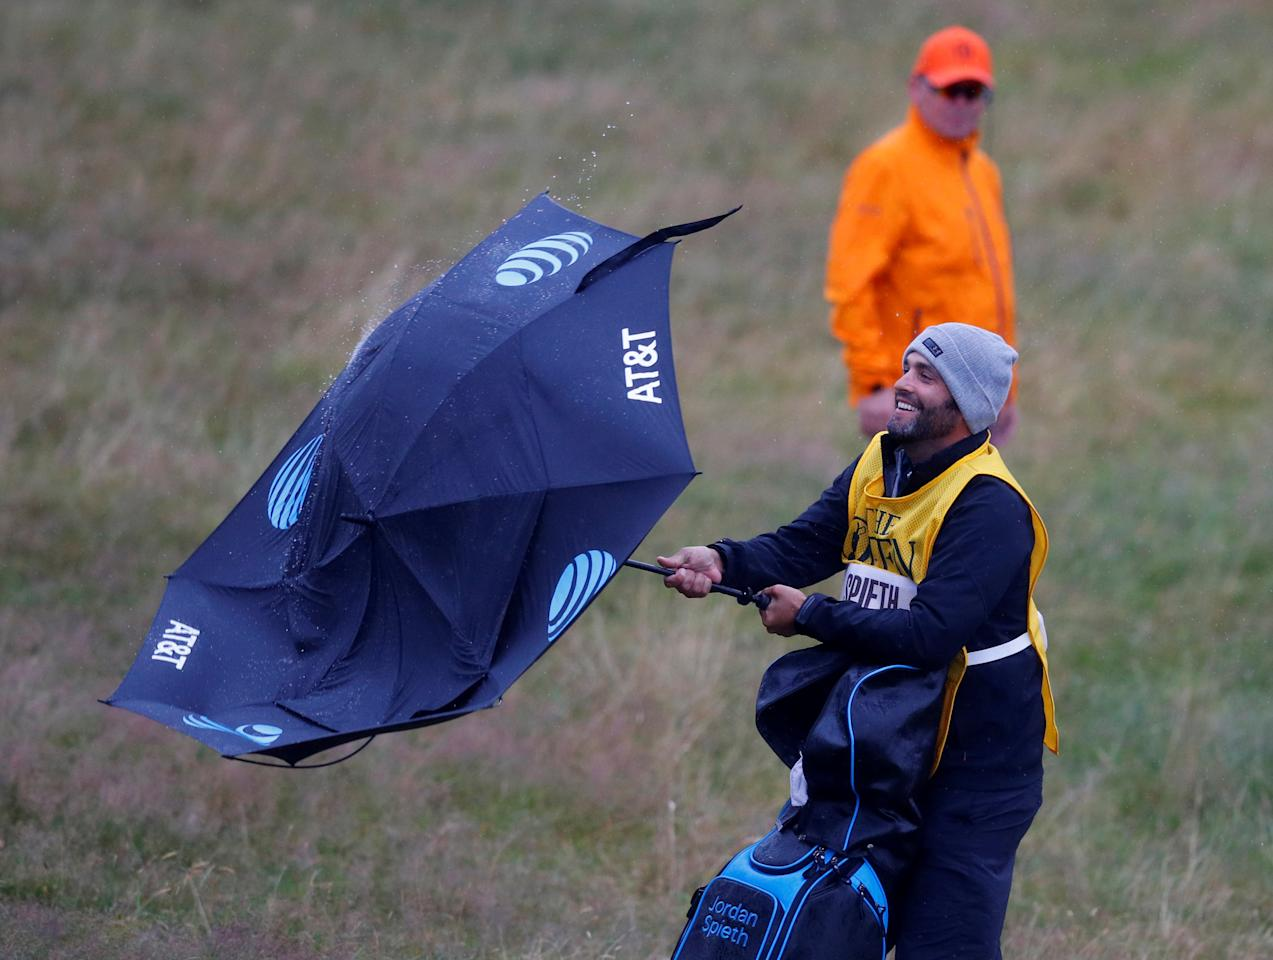 Golf - The 146th Open Championship - Royal Birkdale - Southport, Britain - July 21, 2017   The caddie of USA's Jordan Spieth has trouble with an umbrella on the 17th hole during the second round    REUTERS/Phil Noble